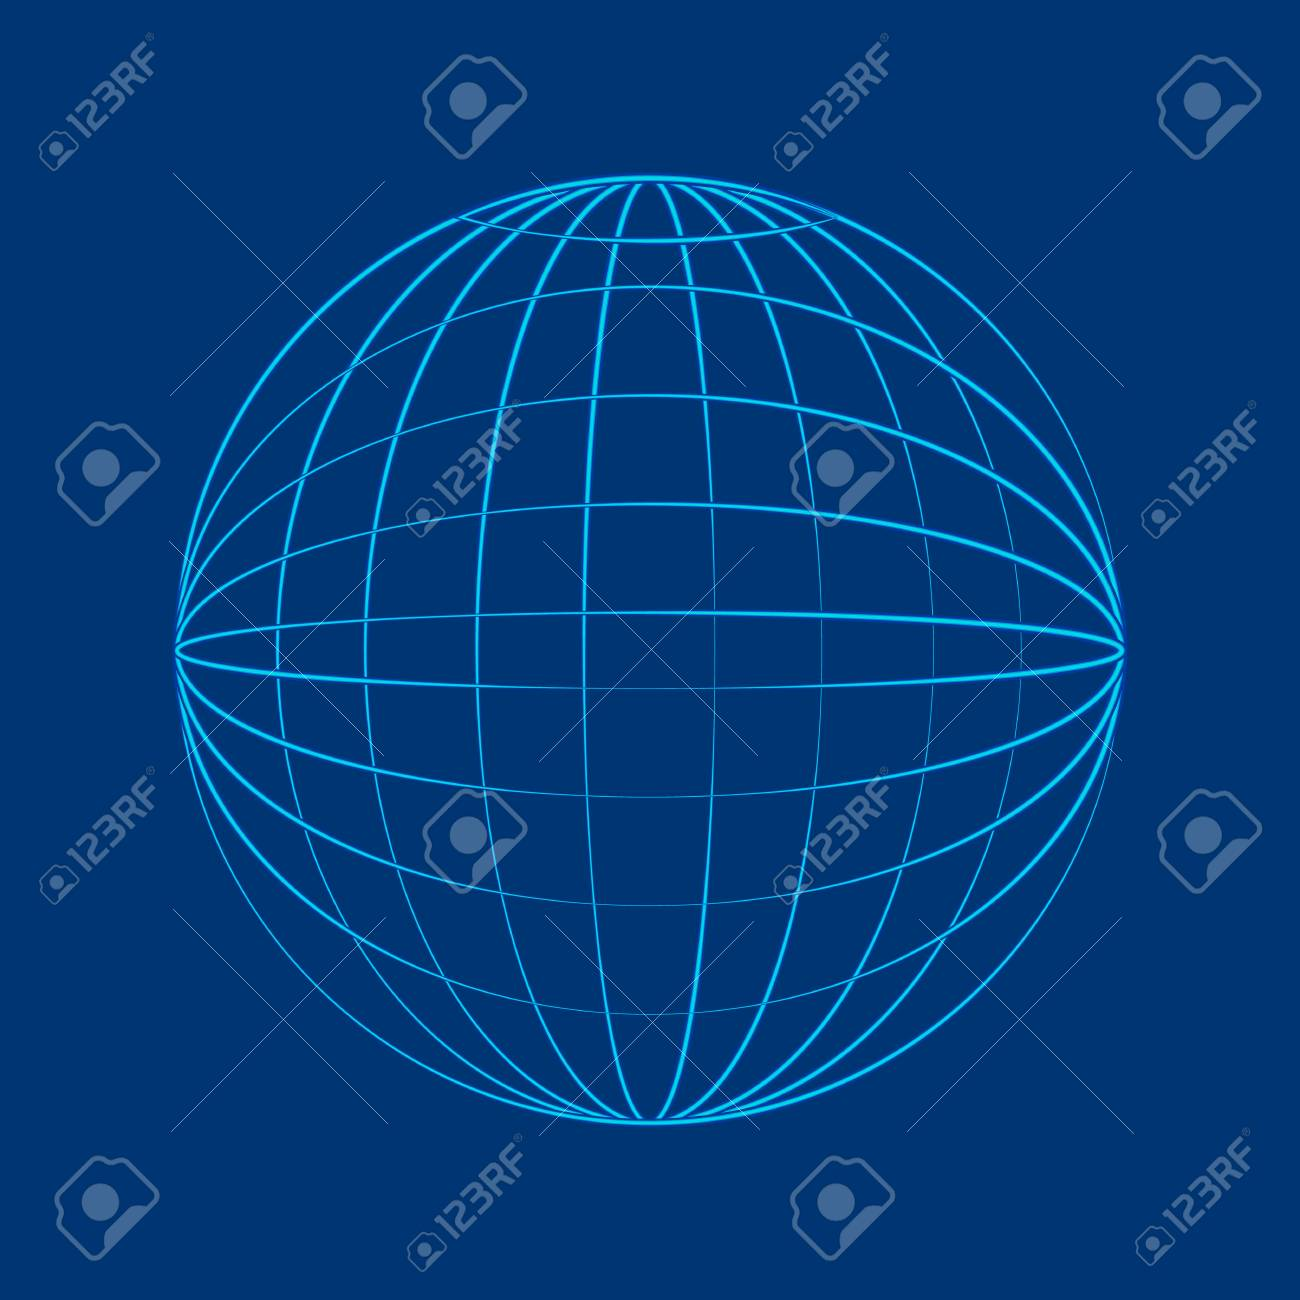 Globe Wireframe Flat Wire Center Circuit Amplifiercircuitsaudio Lilydzc1inductioncookercircuit In Style Royalty Free Cliparts Vectors And Rh 123rf Com Vector Clip Art Dot